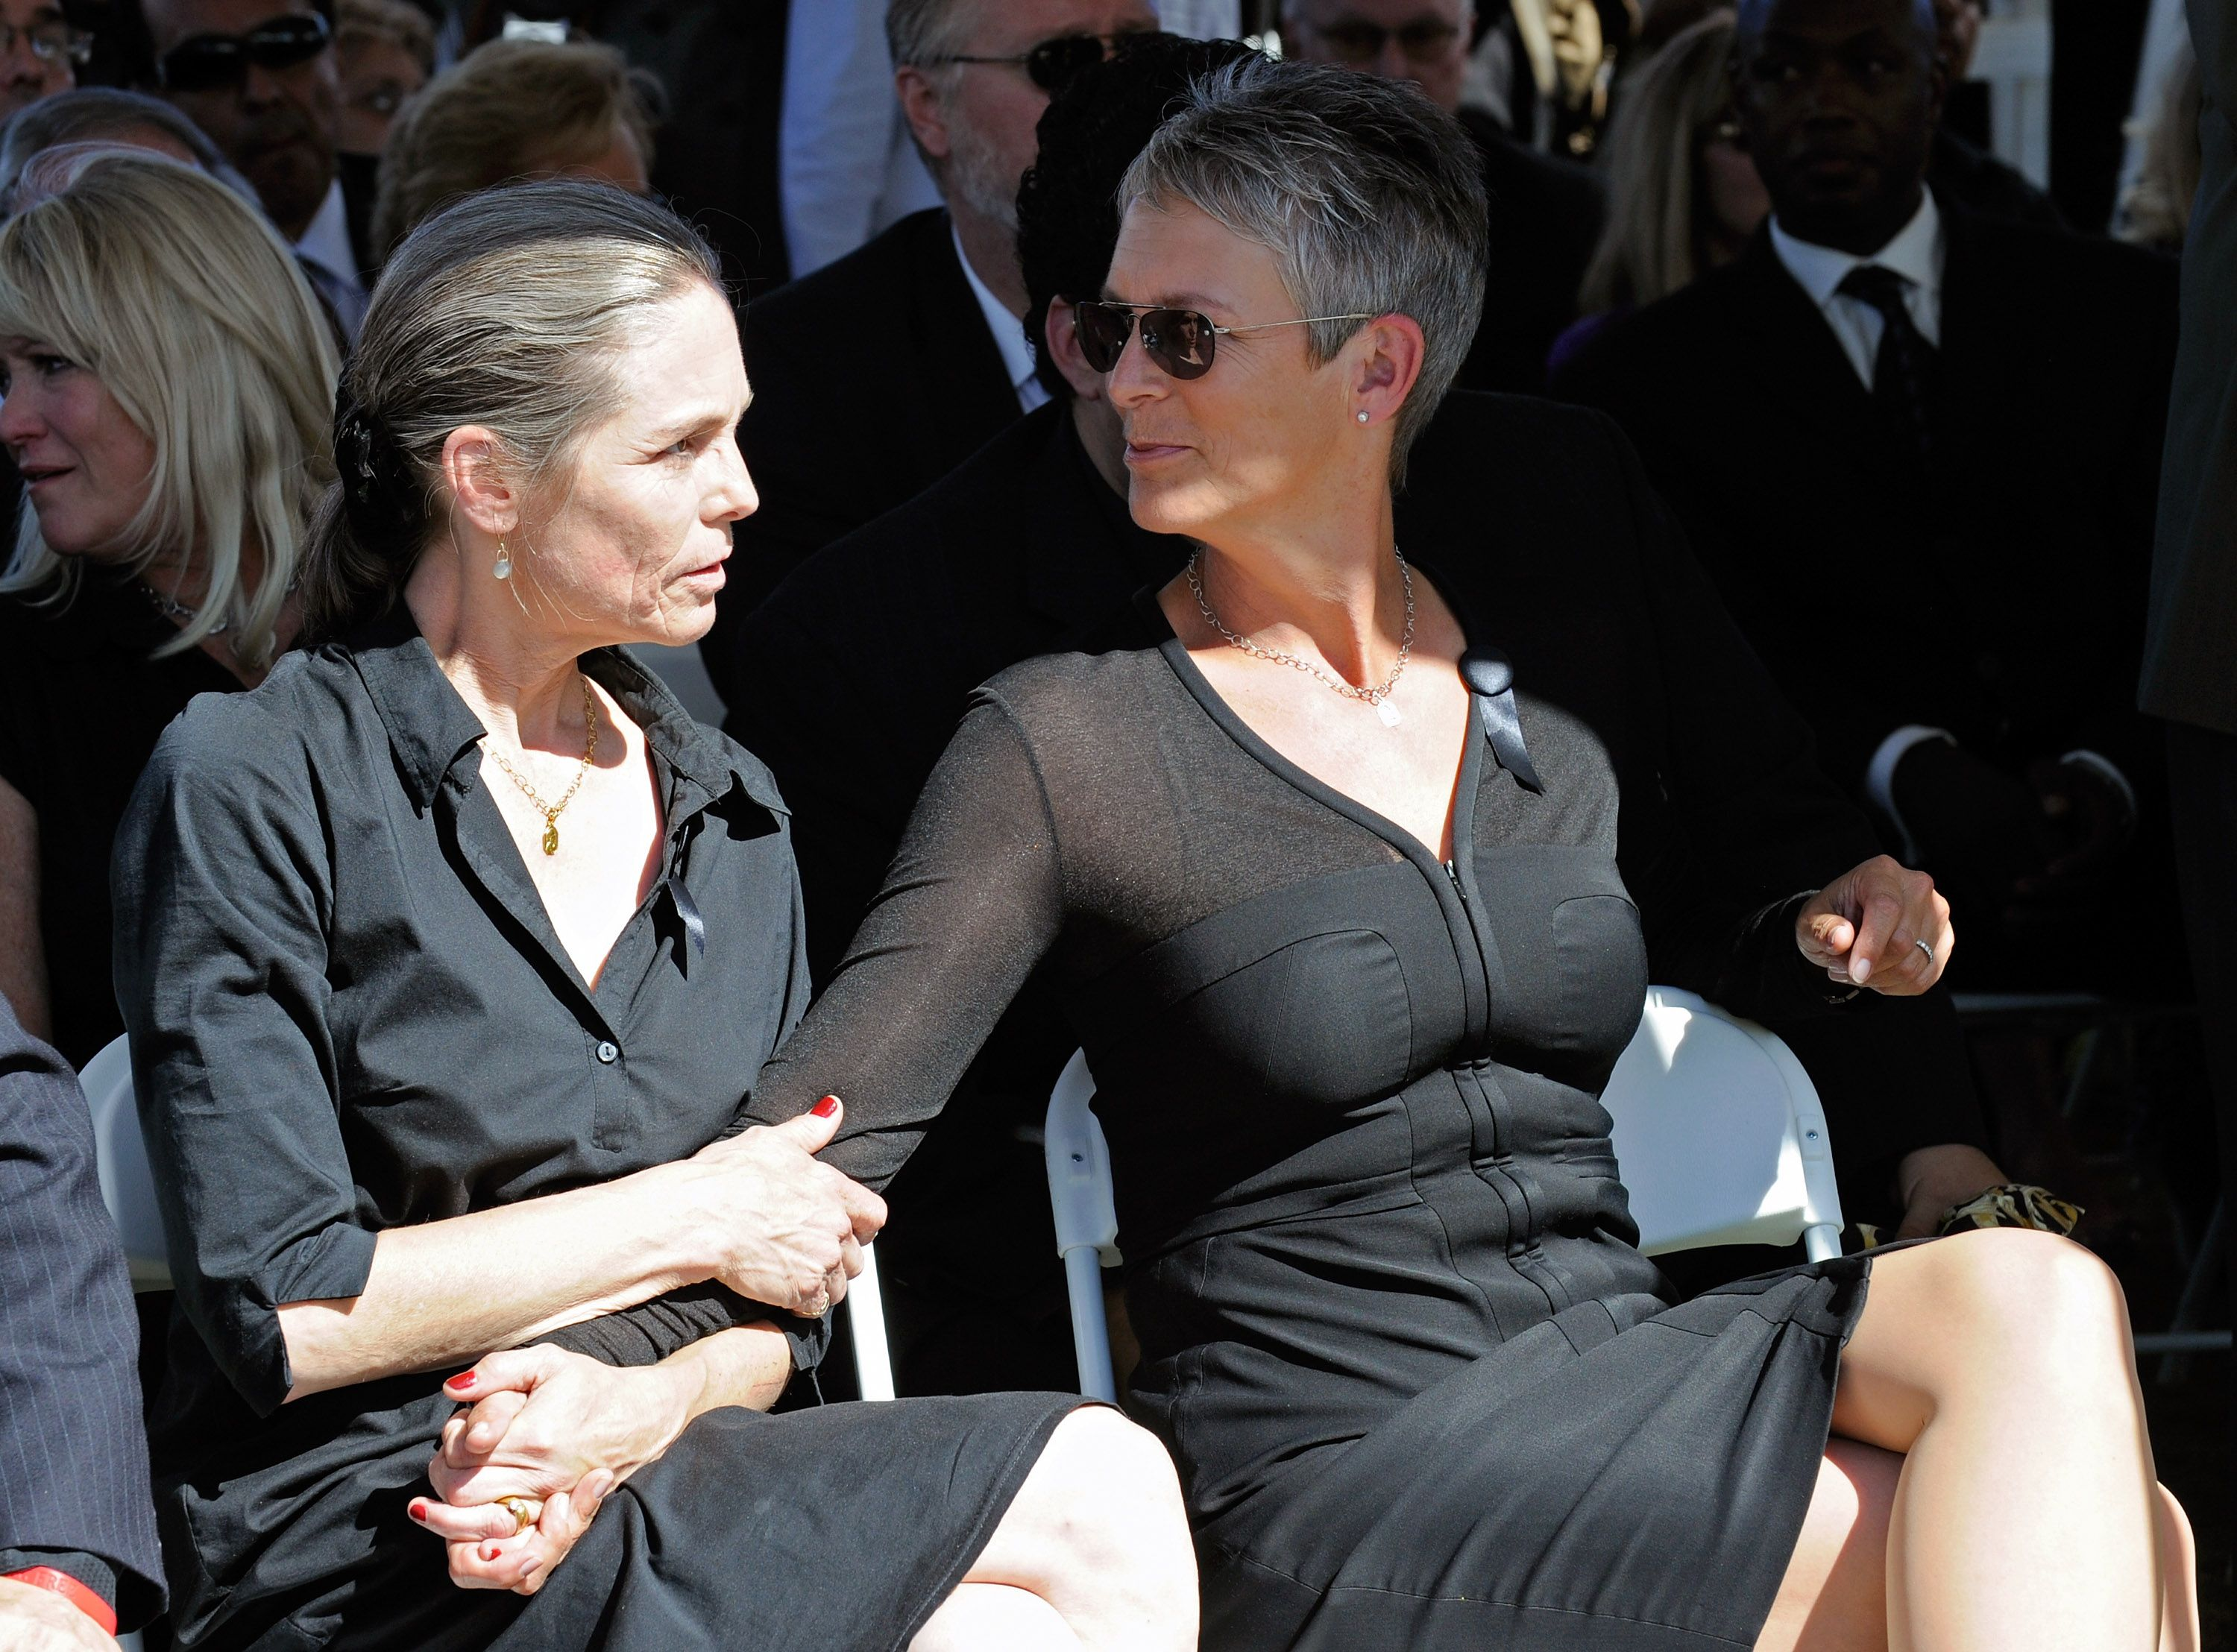 Kelly Curtis and Jamie Lee Curtis, at the funeral for their father Tony Curtis at Palm Mortuary & Cemetary October 4, 2010   Photo: Getty Images